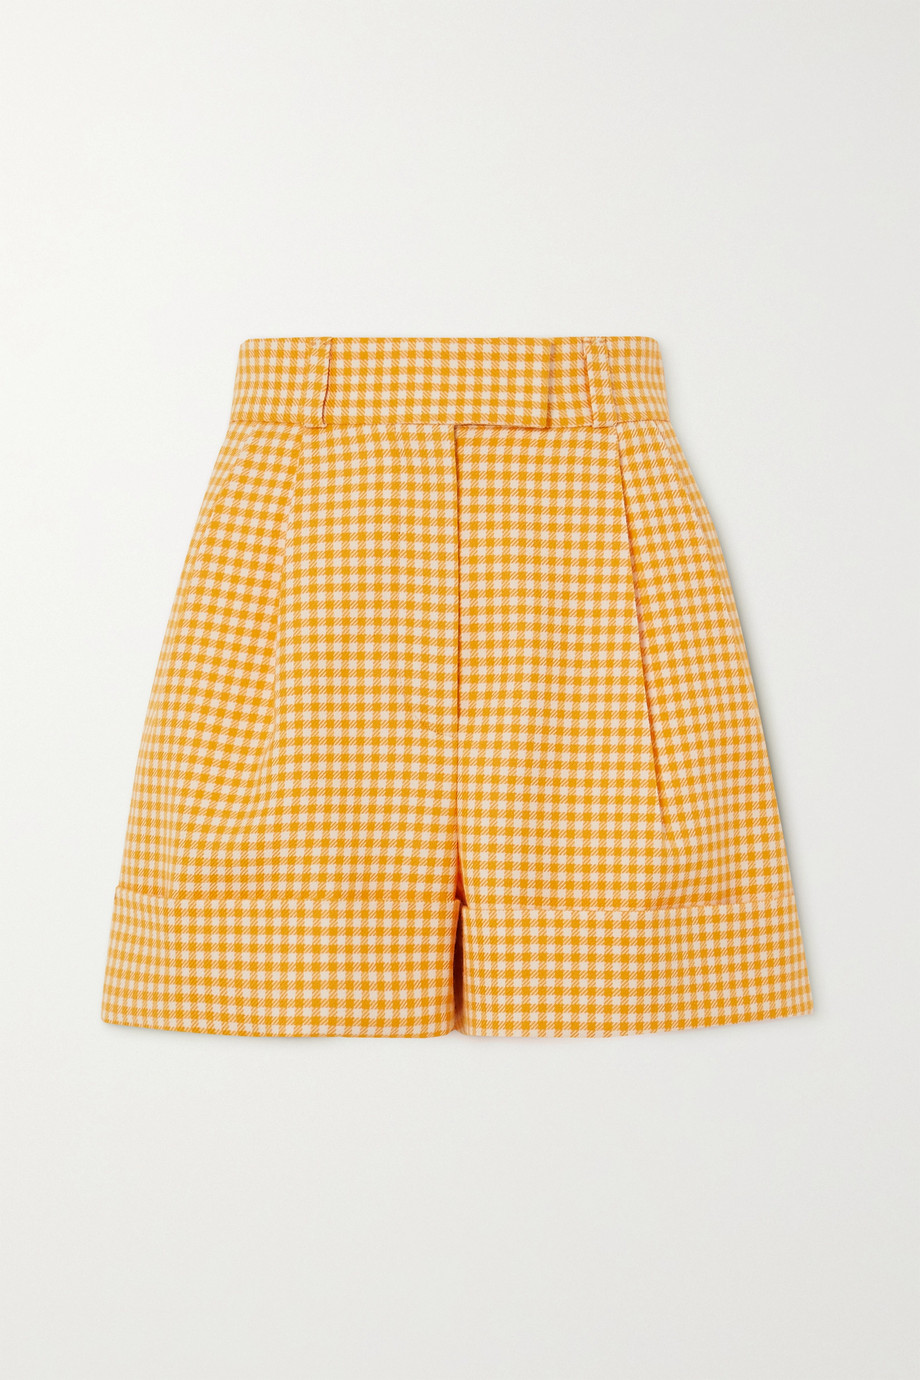 Miu Miu Gingham wool shorts